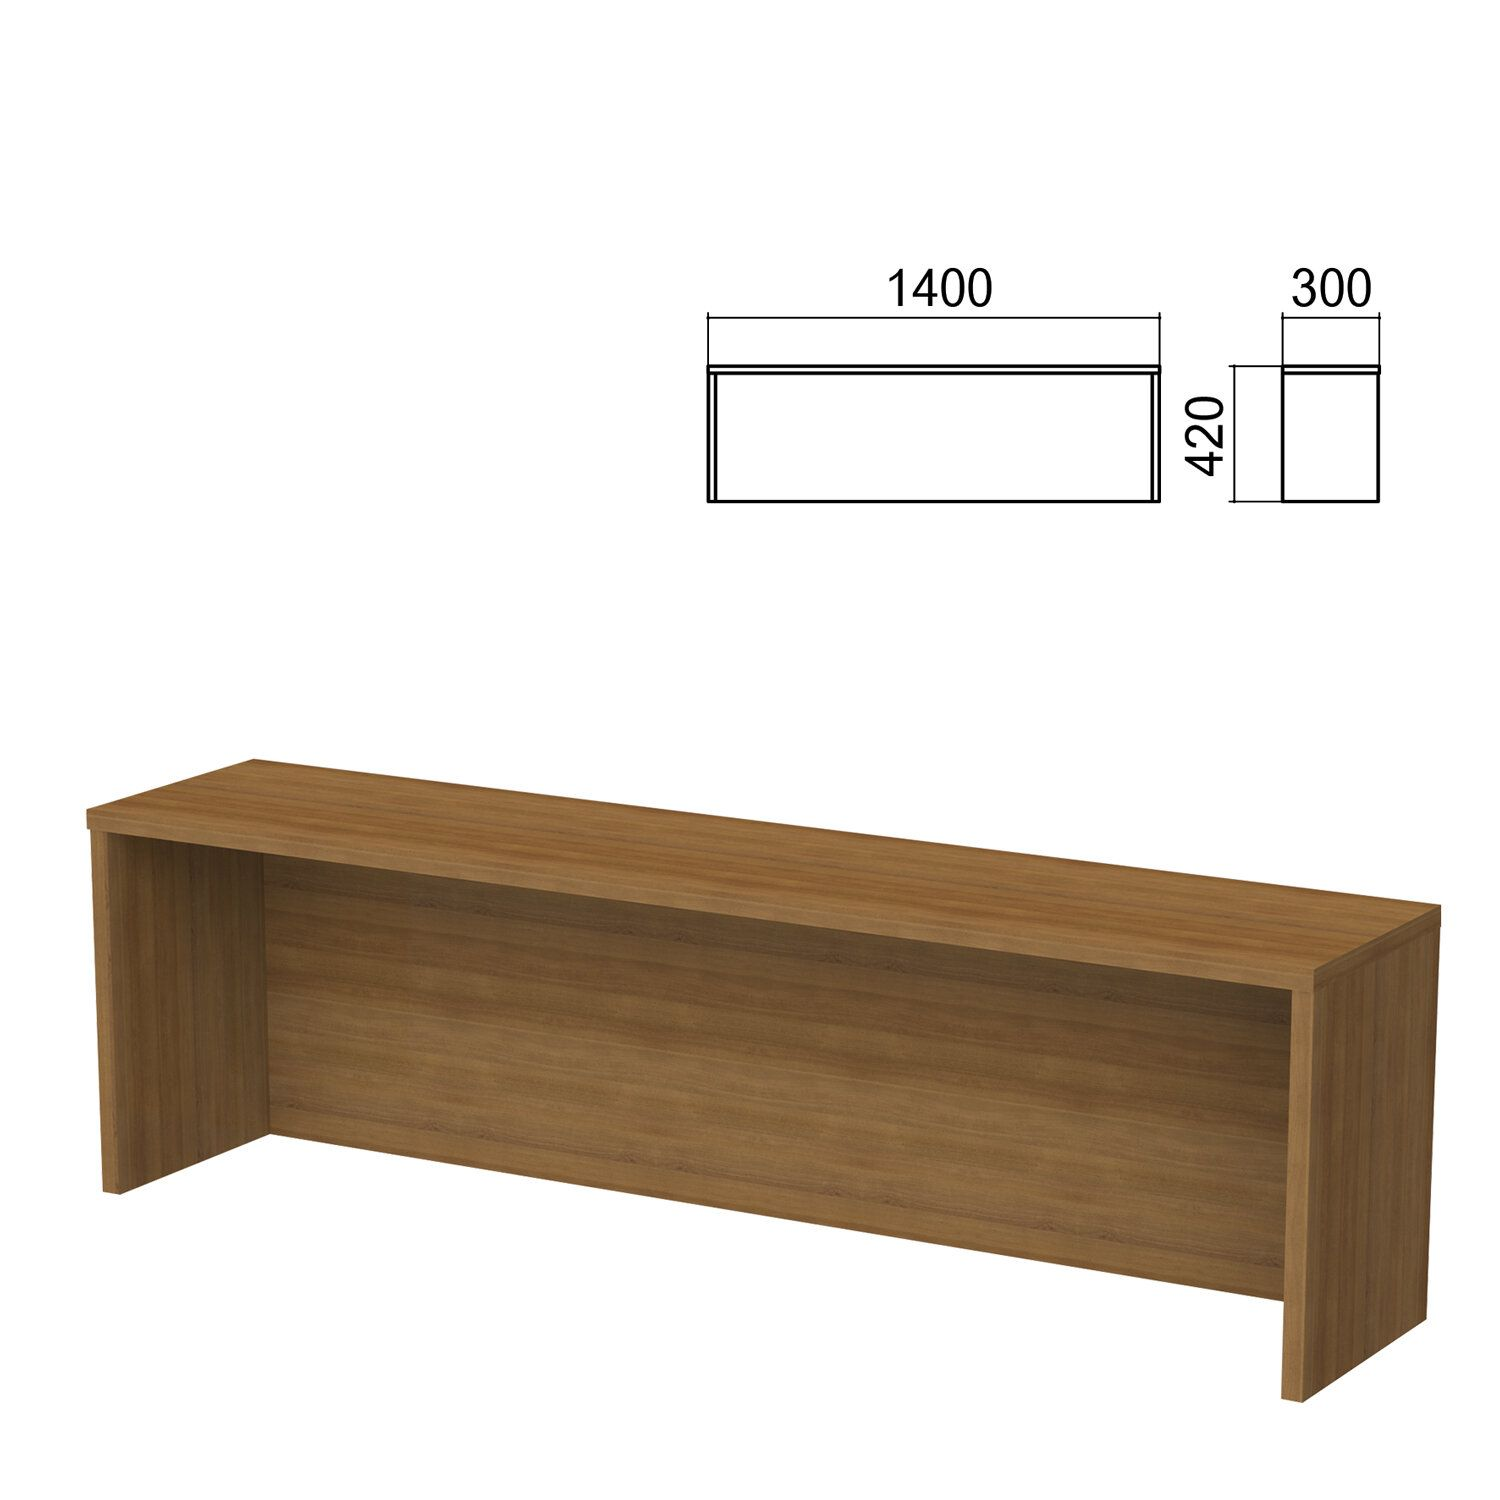 Argo table add-on, 1400 mm wide, walnut